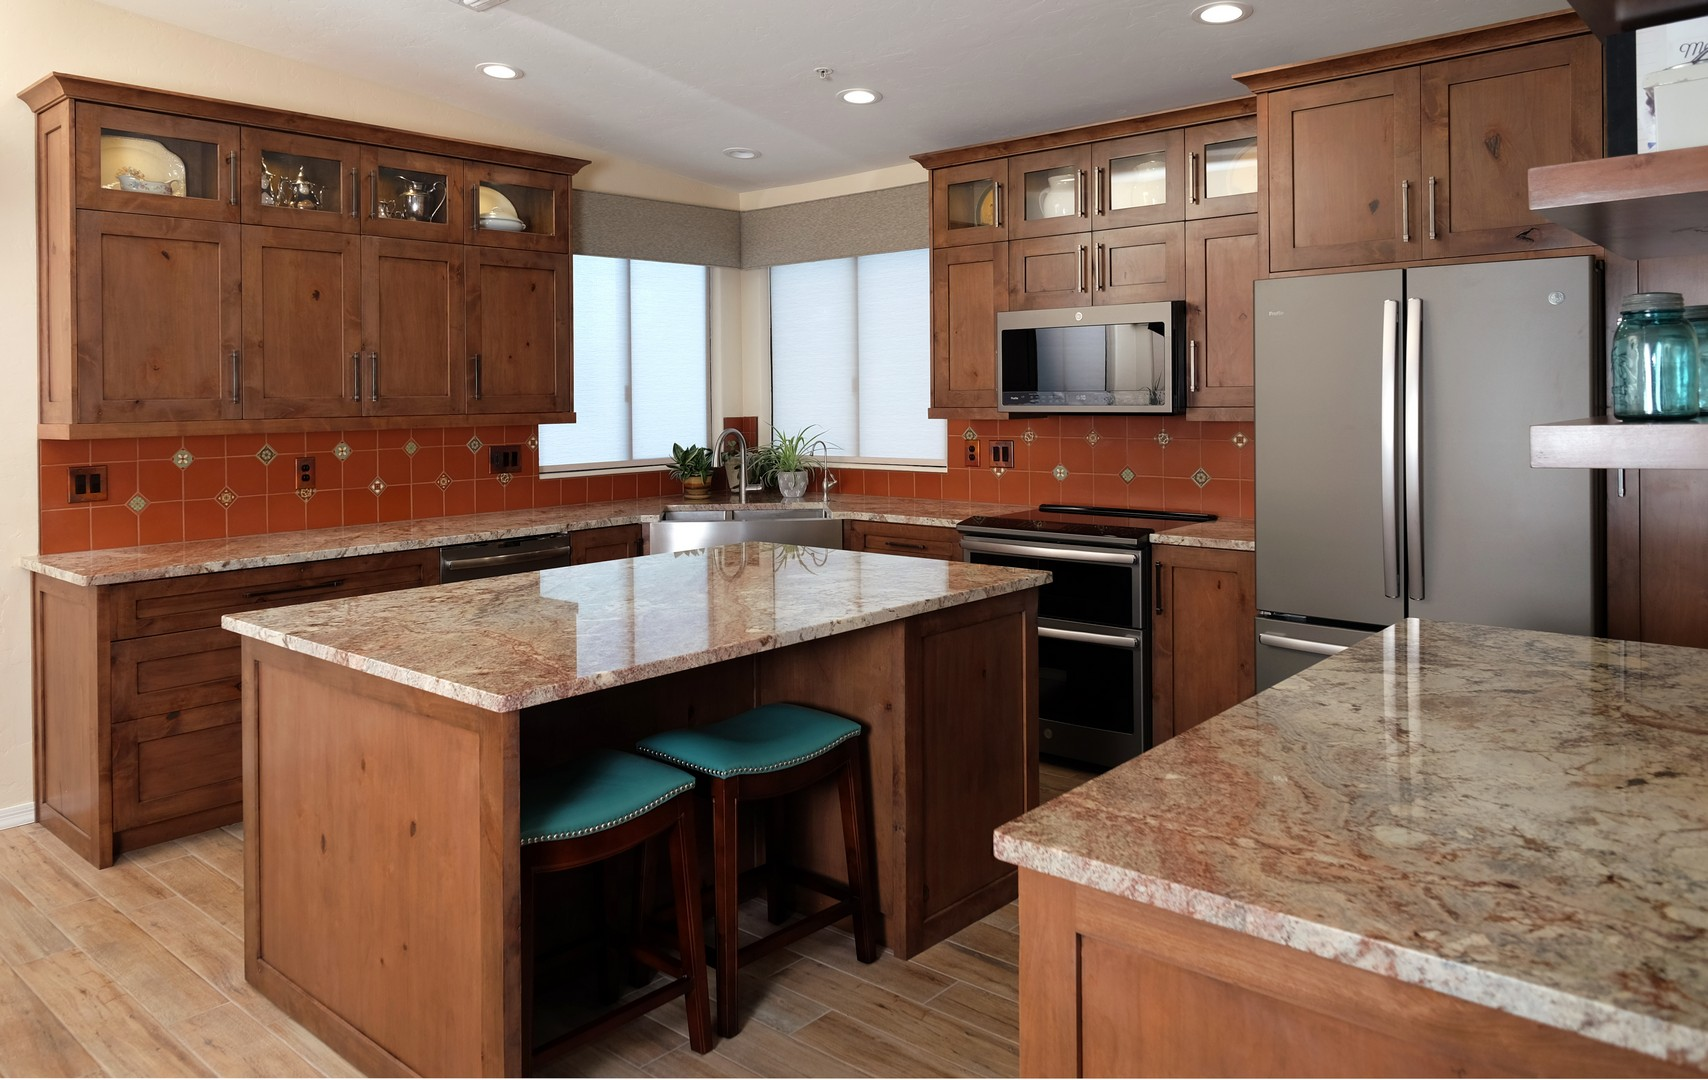 Tucson Southwestern kitchen design and remodel with Spanish Colonial Revival style featuring Mexican deco and terra cotta tiles, knotty custom cabinetry, and teal & turquoise accents.